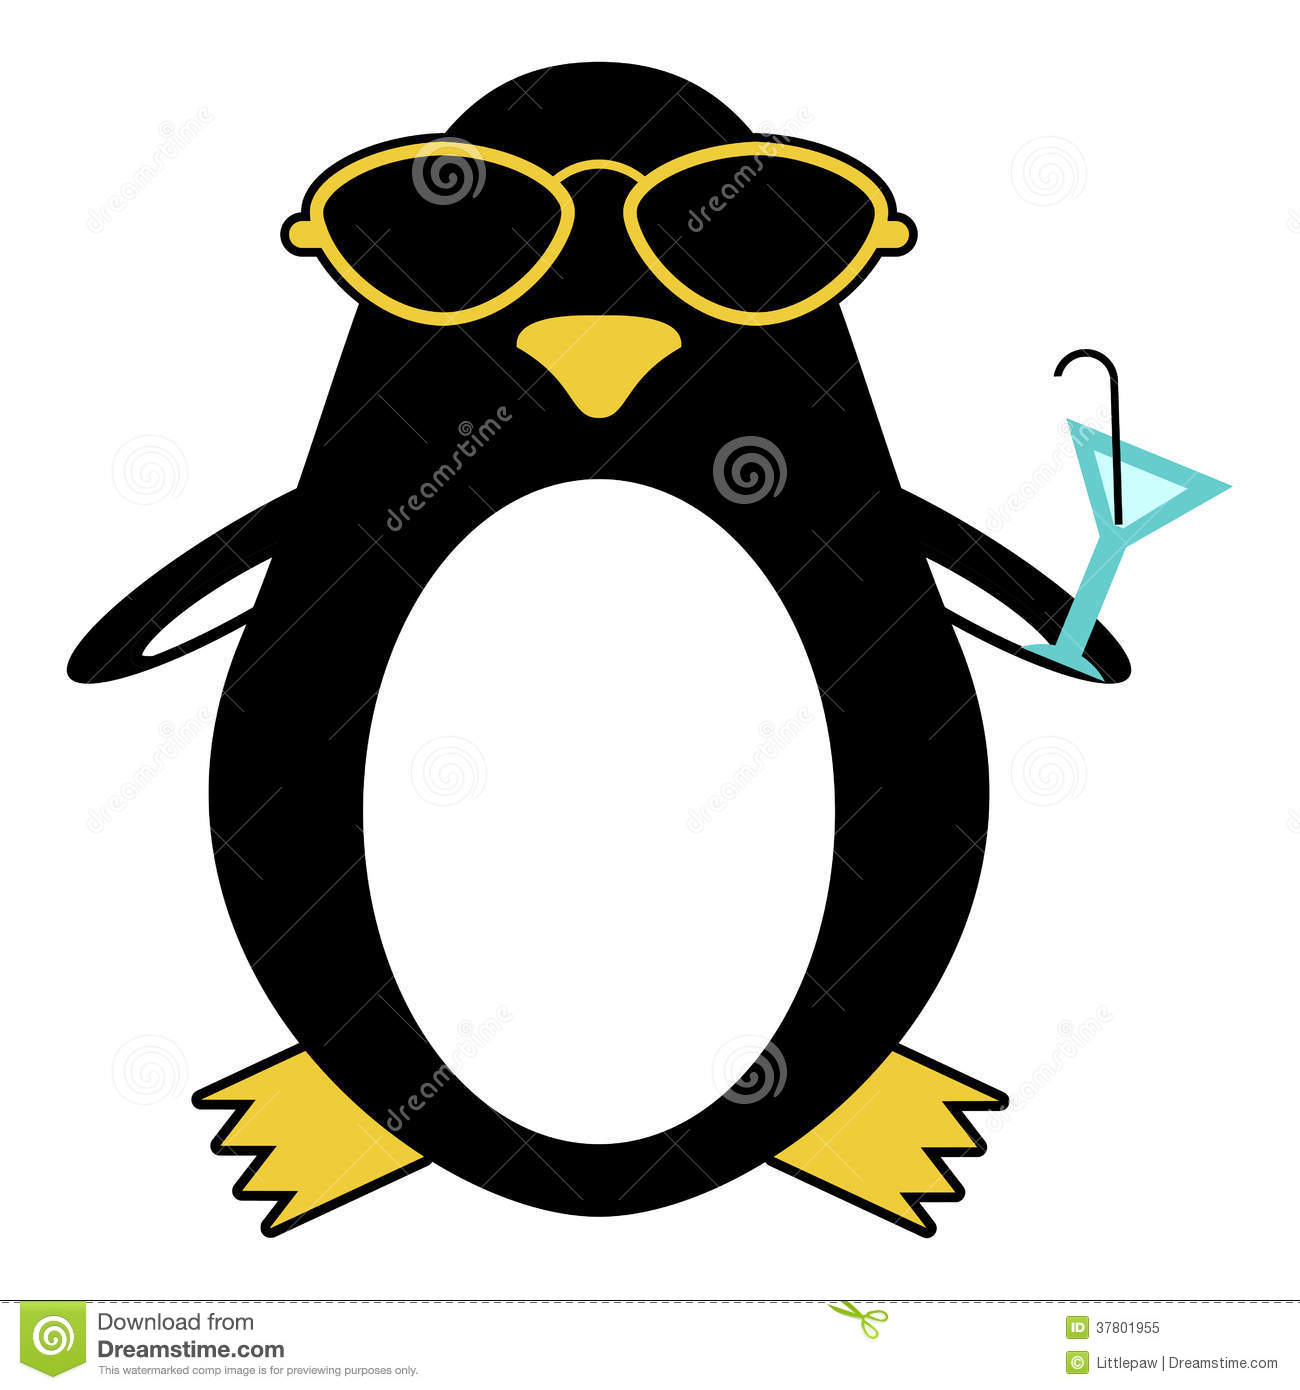 penguin-sunglasses-cocktail-funny-378019